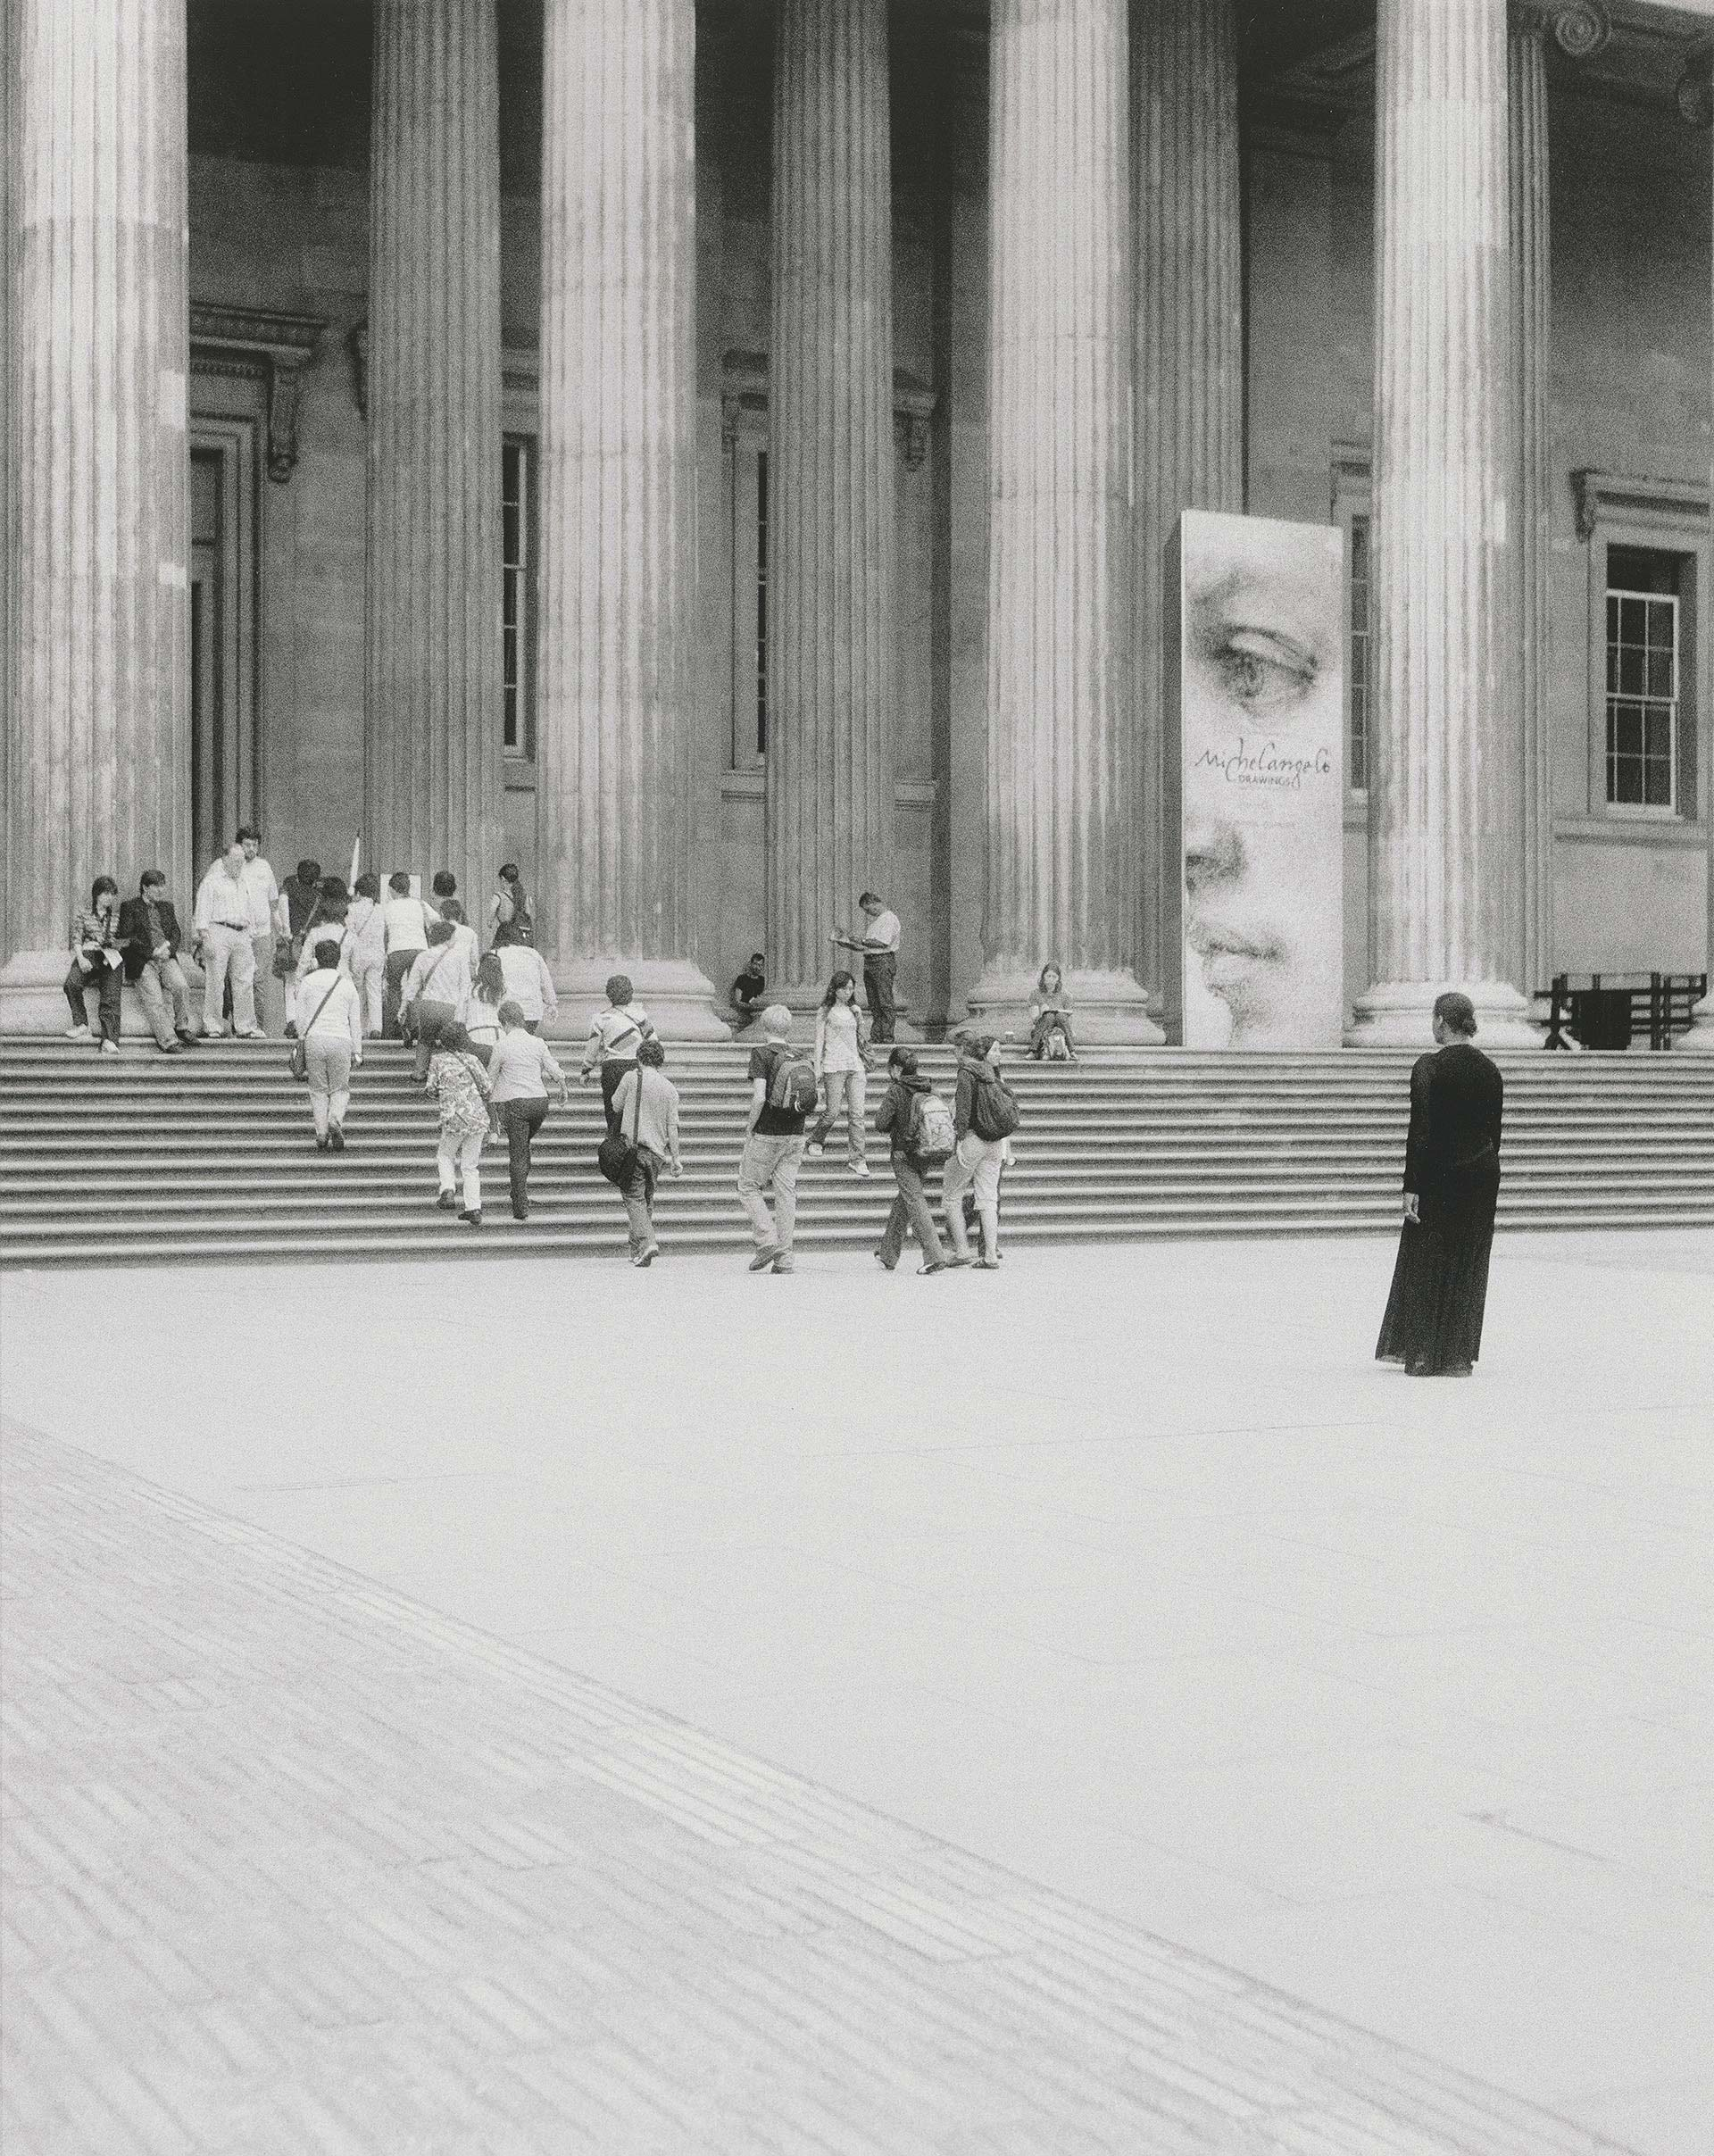 Carrie Mae Weems, When and Where I Enter the British Museum, 2007, digital print on paper, Yale Center for British Art, Friends of British Art Fund, © Carrie Mae Weems, courtesy of the artist and Jack Shainman Gallery, New York